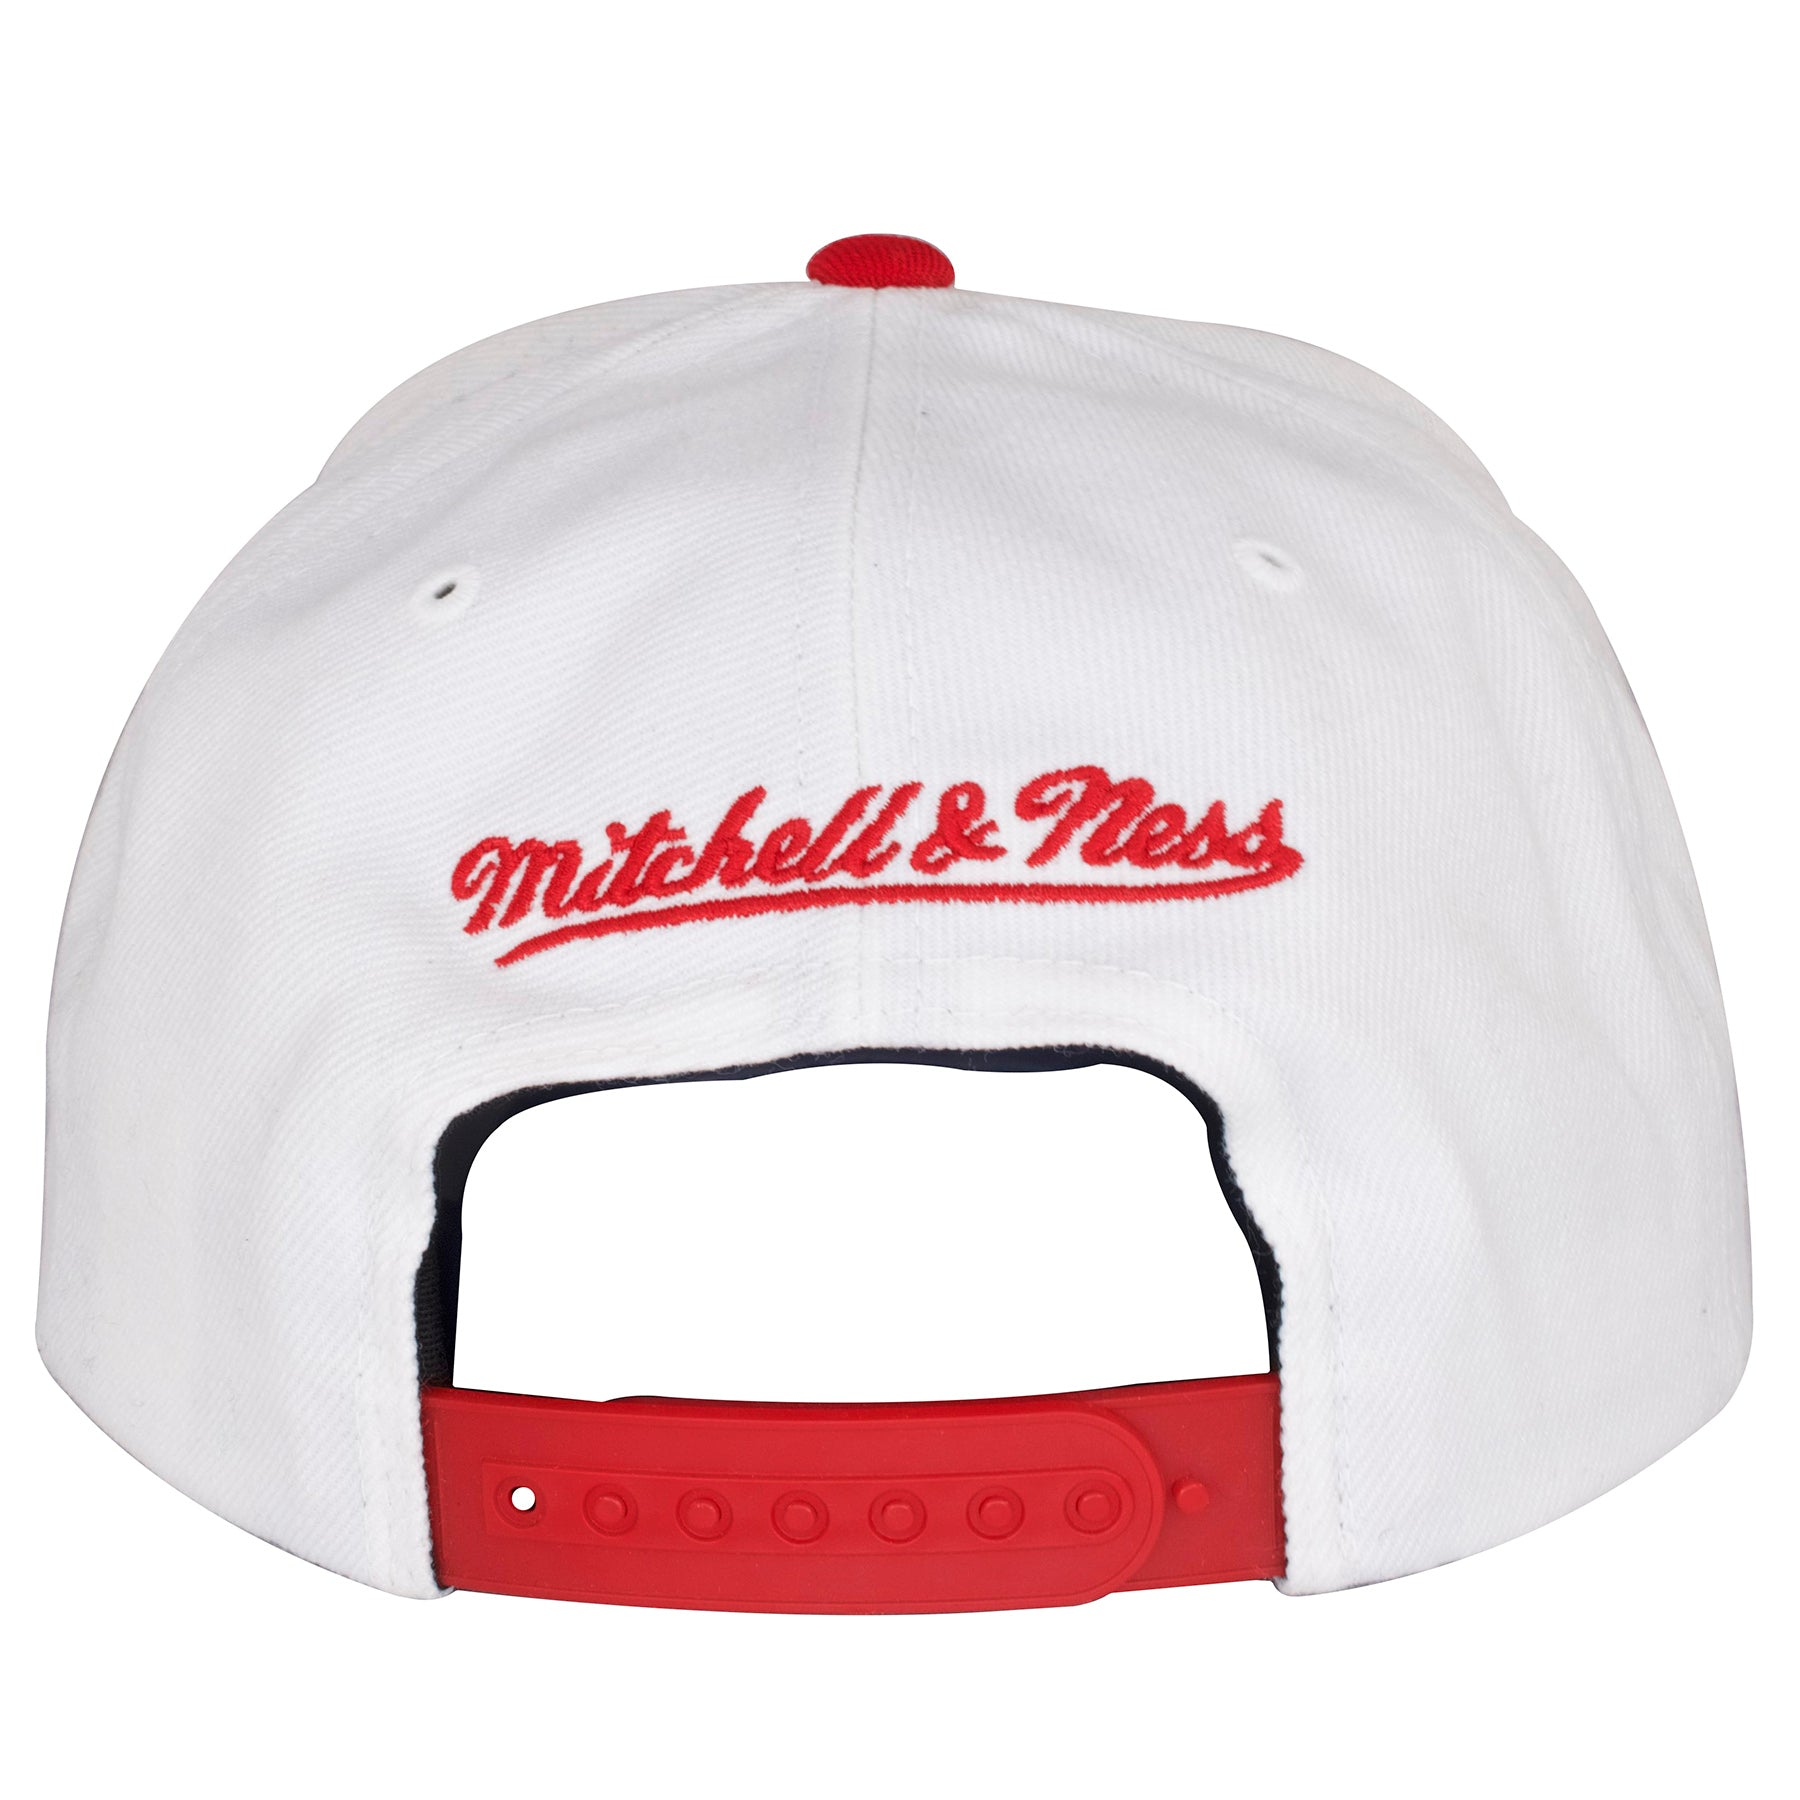 e06cd11504e ... jordan 11 sneaker matching snapback  the back of the chicago bulls win  like 96 sneaker matching snapback hat is a red ...